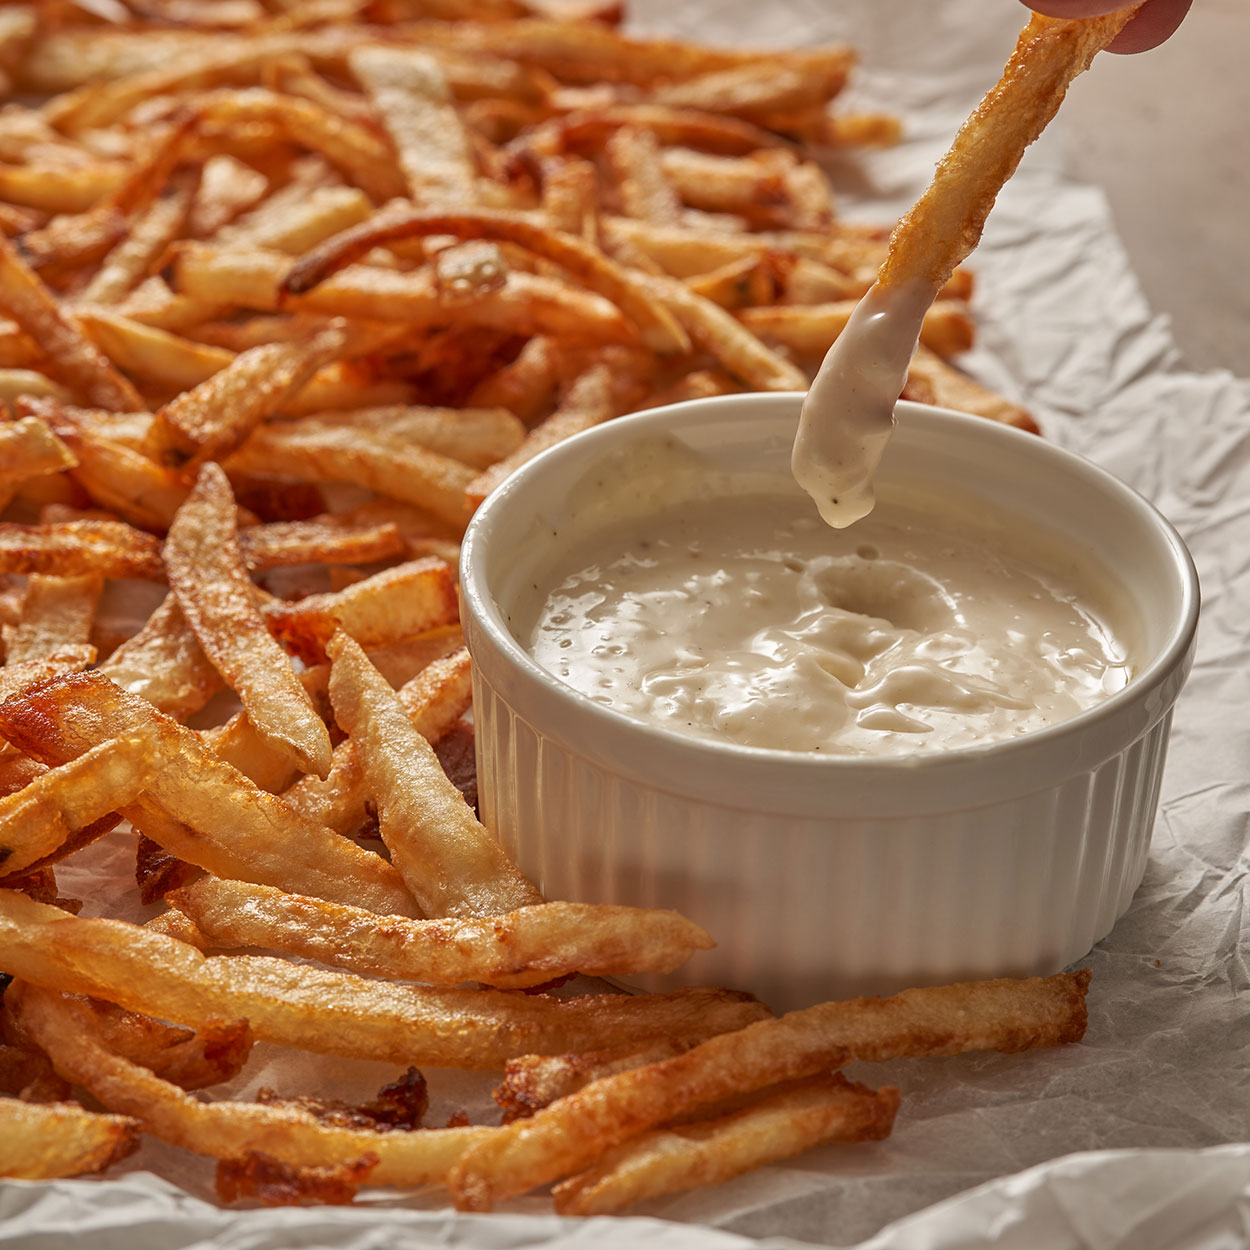 cold fry French fries